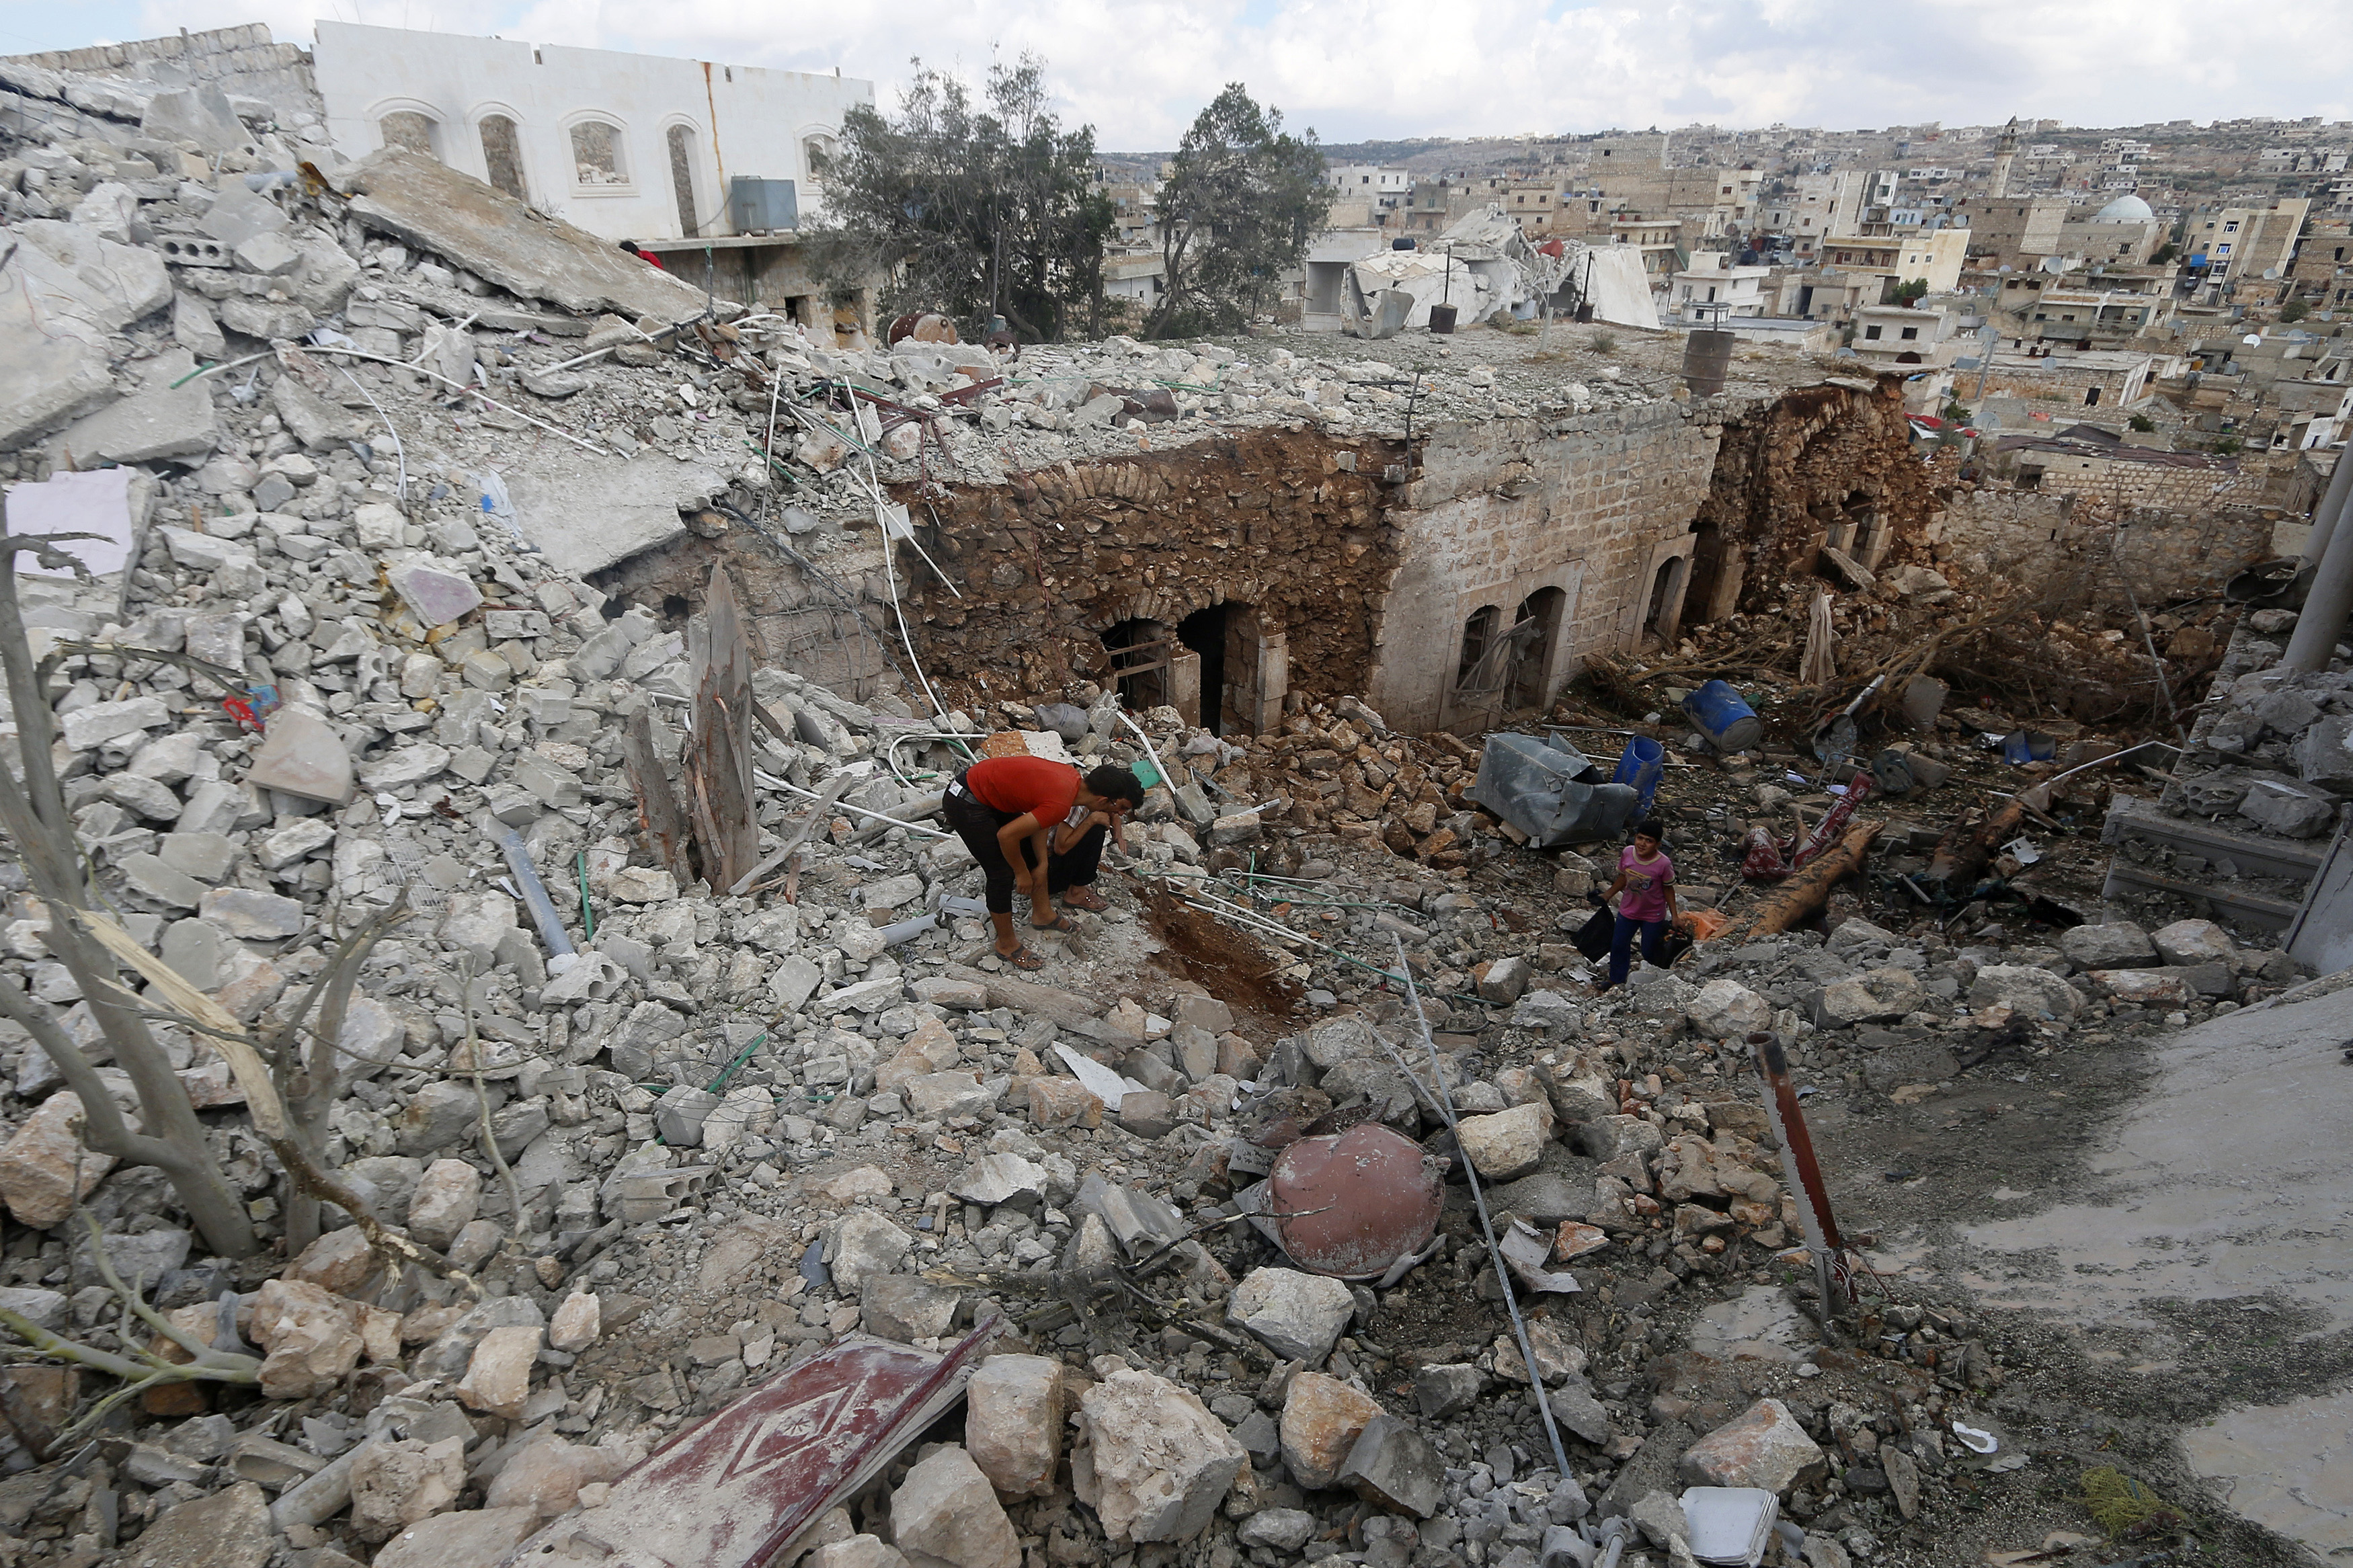 Civilians inspect a site hit by what residents said were airstrikes carried out by the Russian air force in the town of Darat Izza in the province of Aleppo, Syria, October 7, 2015. REUTERS/Ammar Abdullah - RTS6T8N